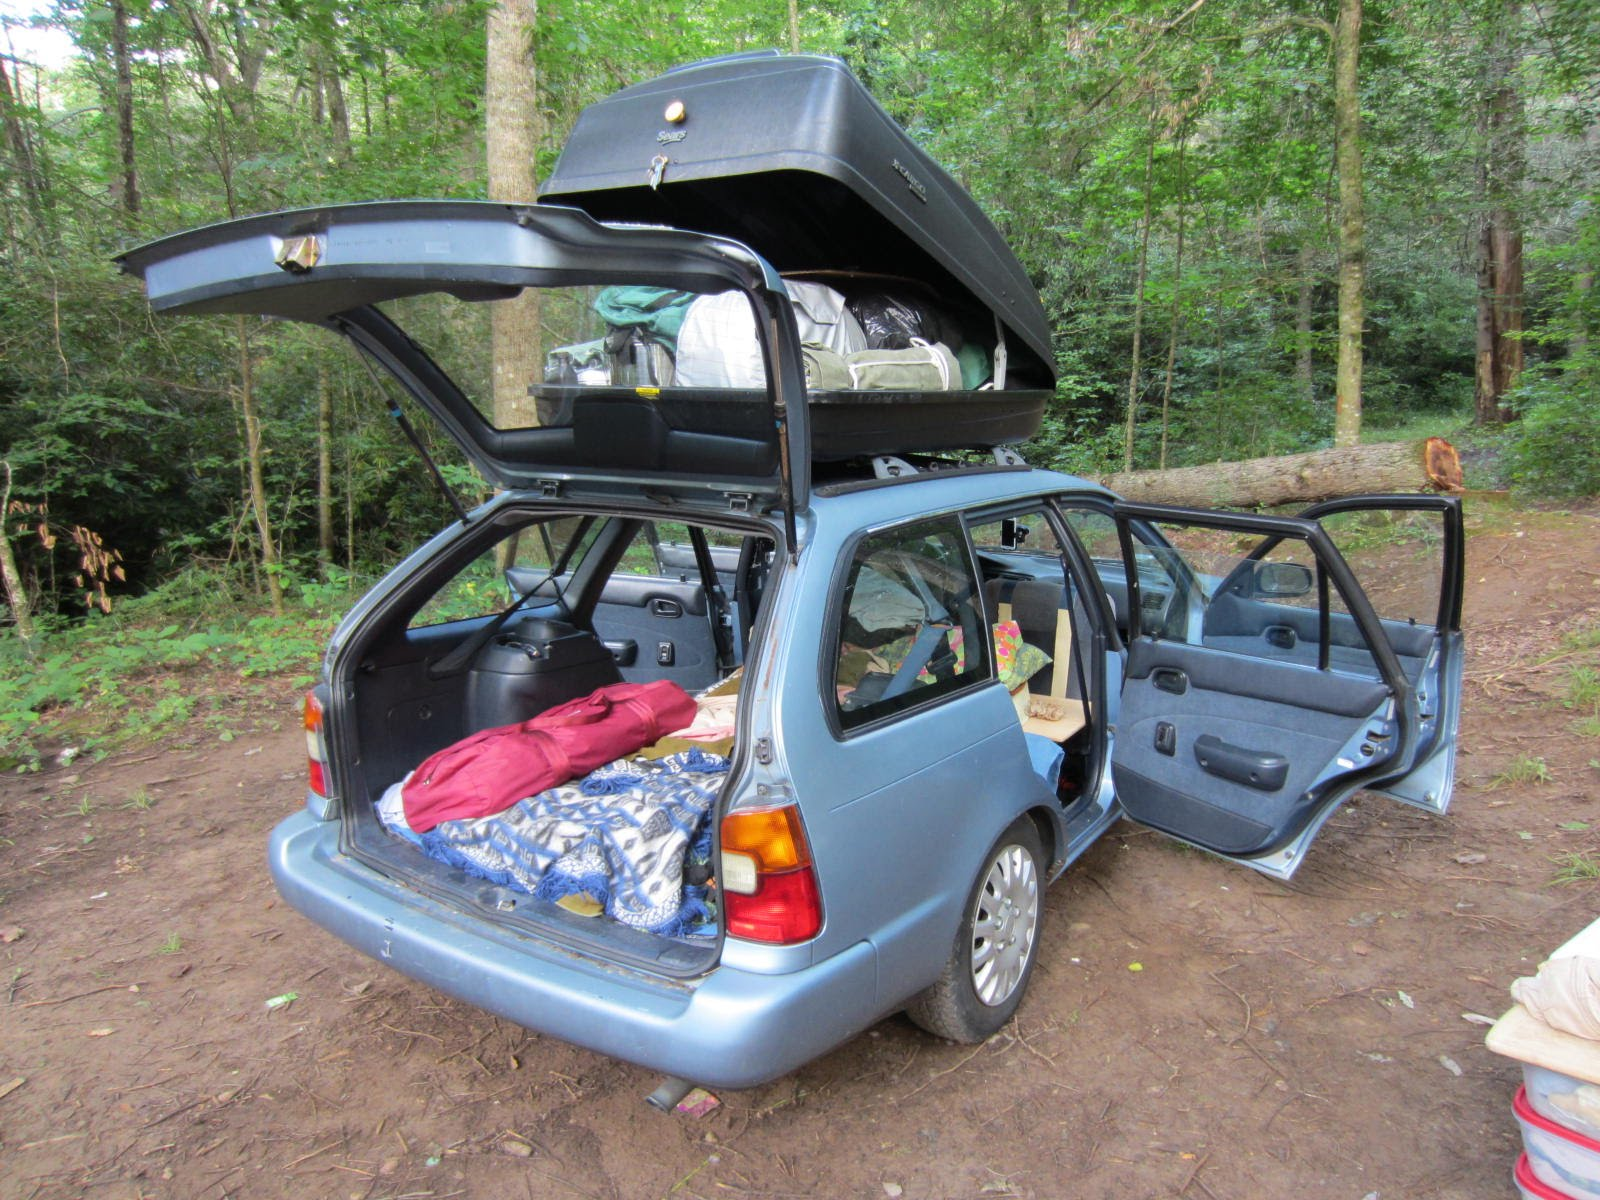 How to Build a Tiny House in your CAR